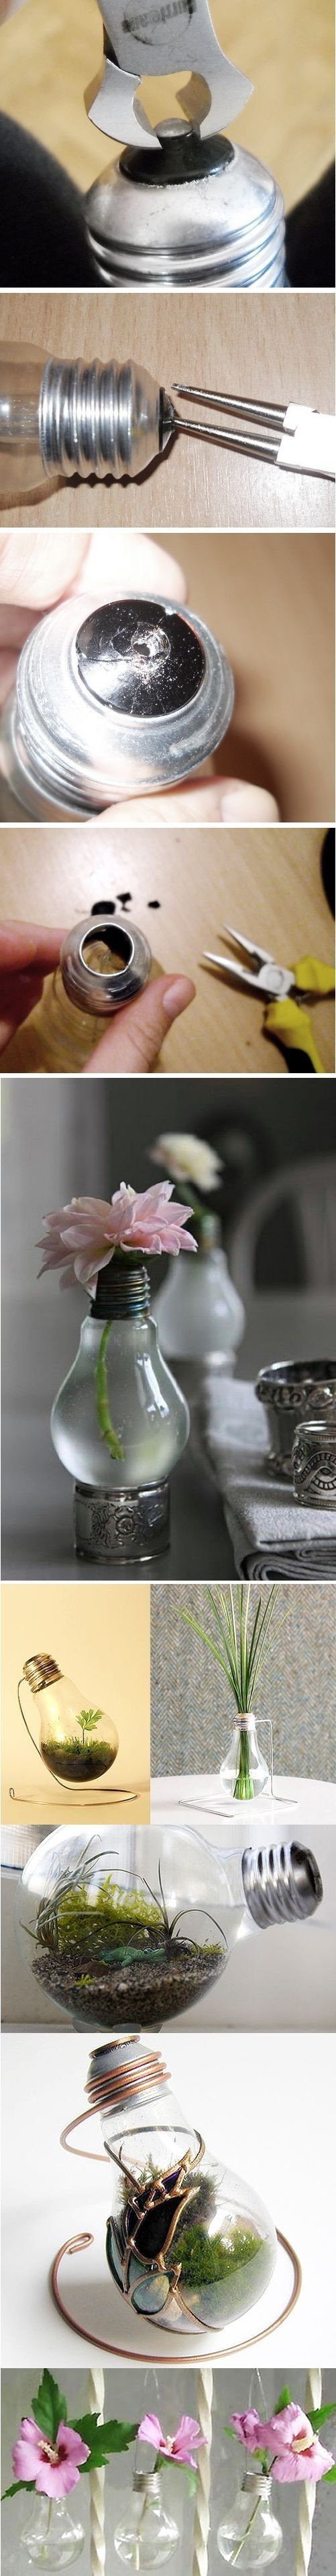 garden splendor colorfill vase filler of 129 best clever crafts images on pinterest good ideas crafts and within diy project recycled light bulbs this might look cute as a vase in my new candle holder